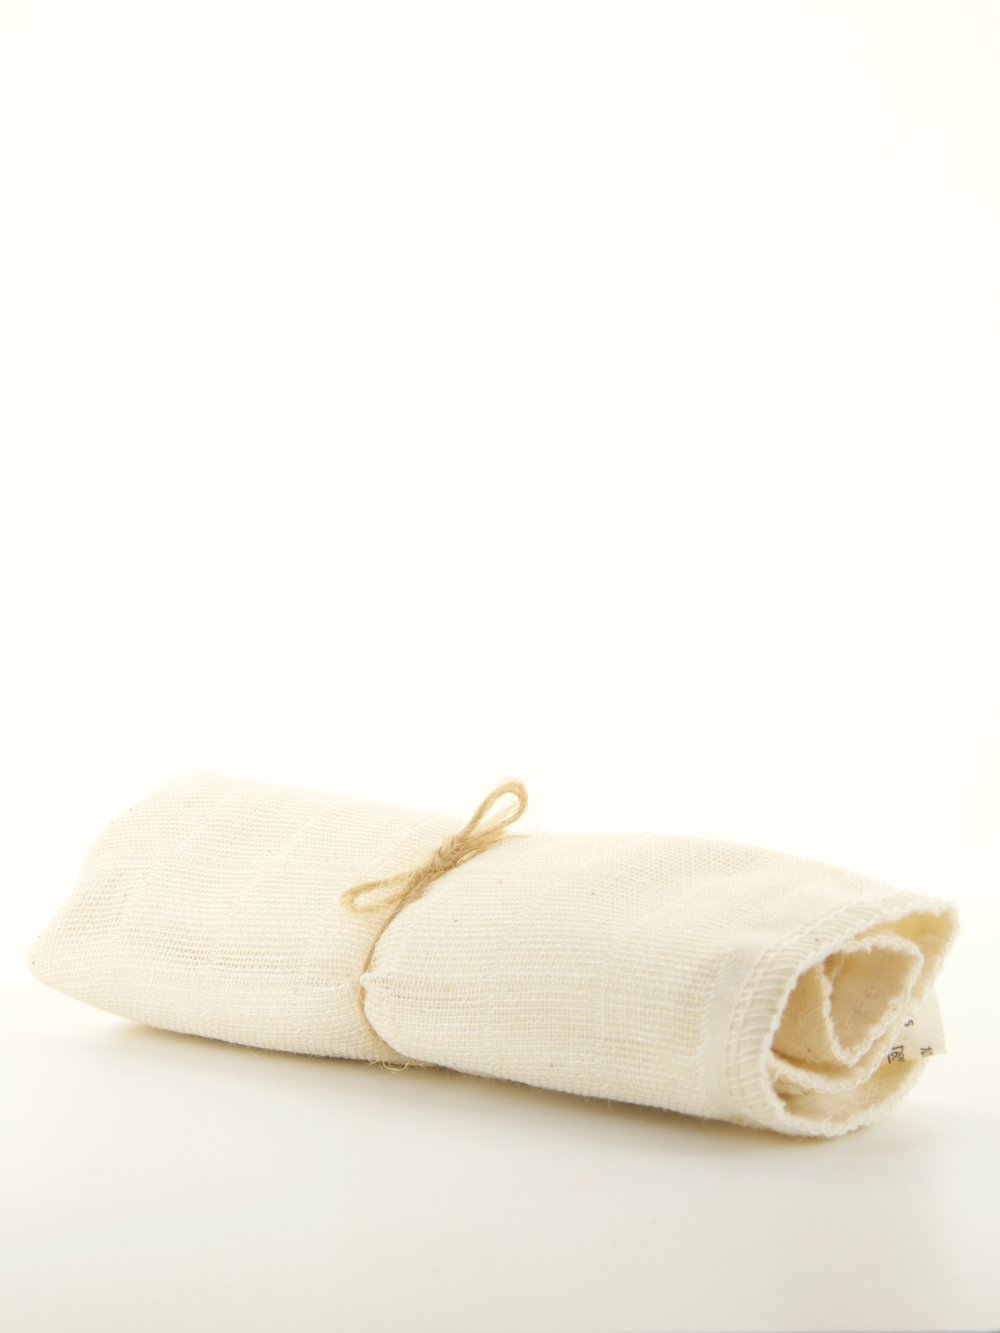 Greenfibres Double Sided Face Cloth £3.10